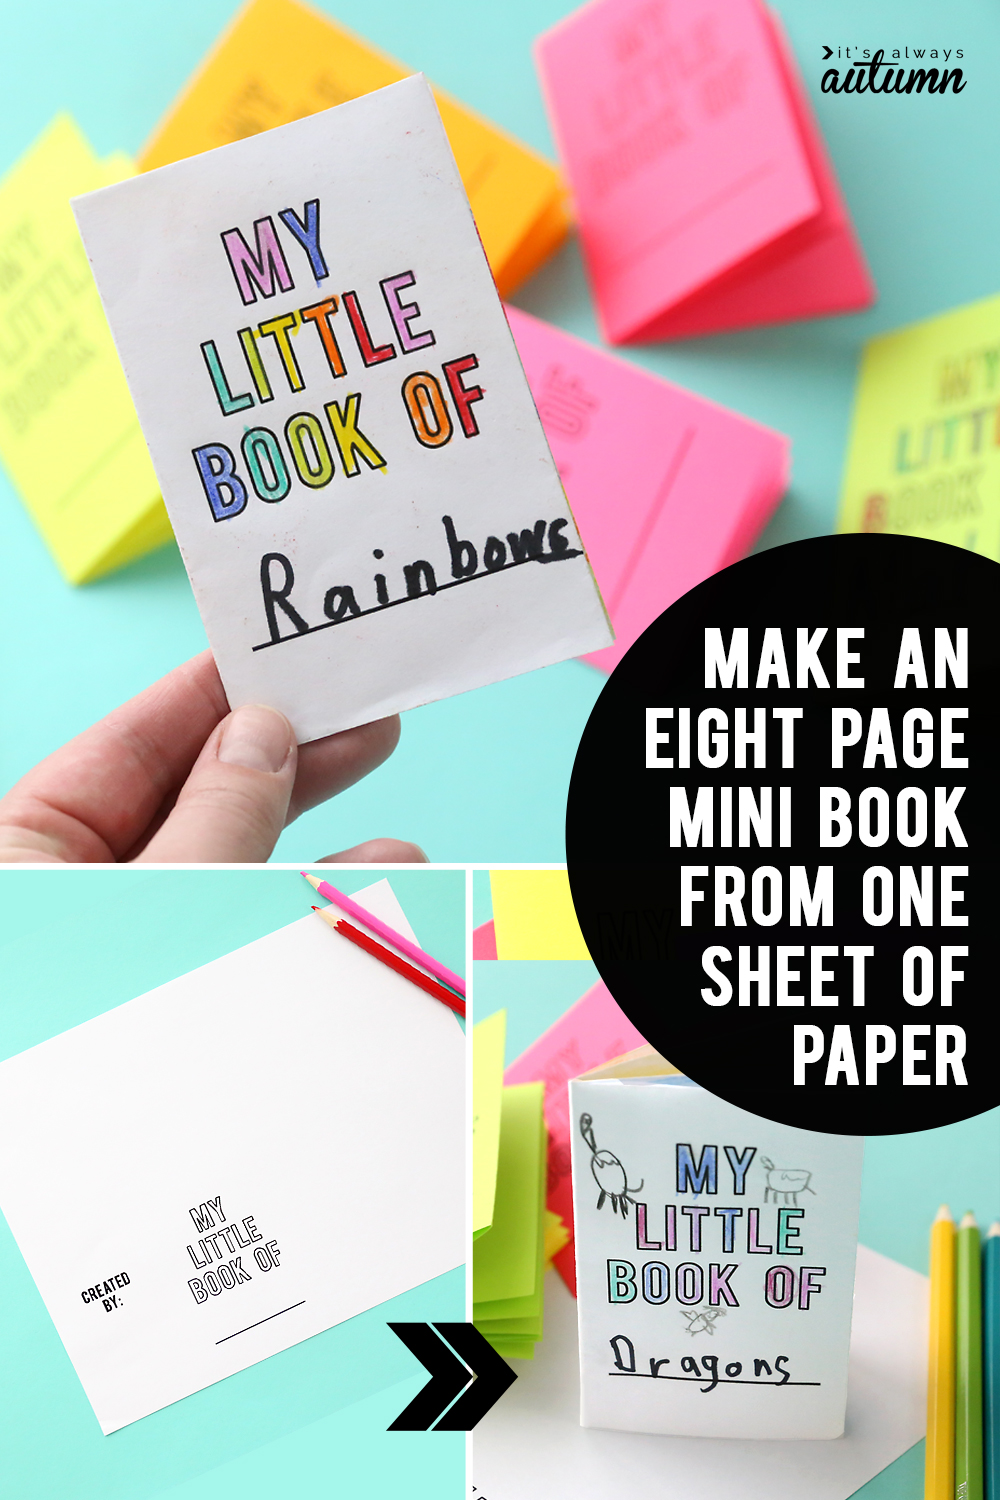 Little paper book that has been folded from one sheet of paper - foldable book